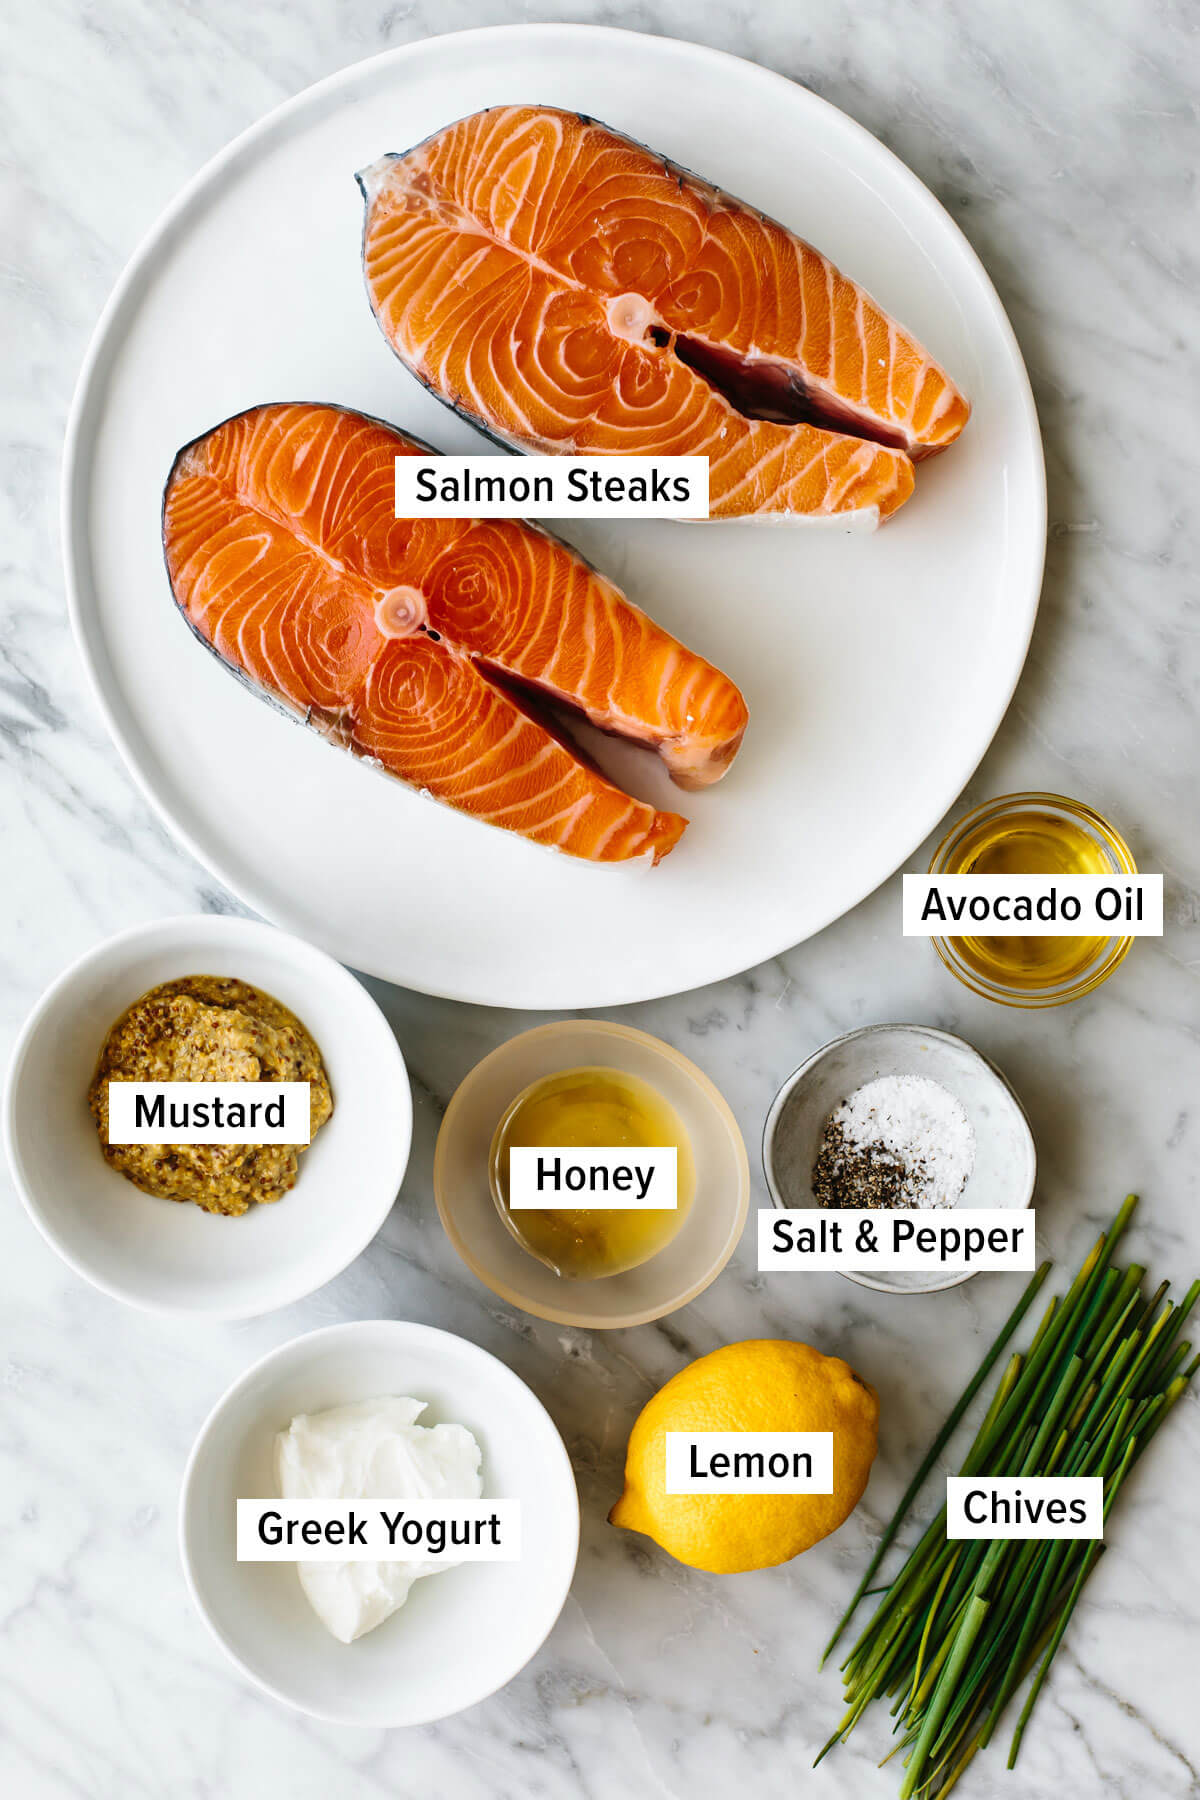 Ingredients for grilled salmon steak on a table.